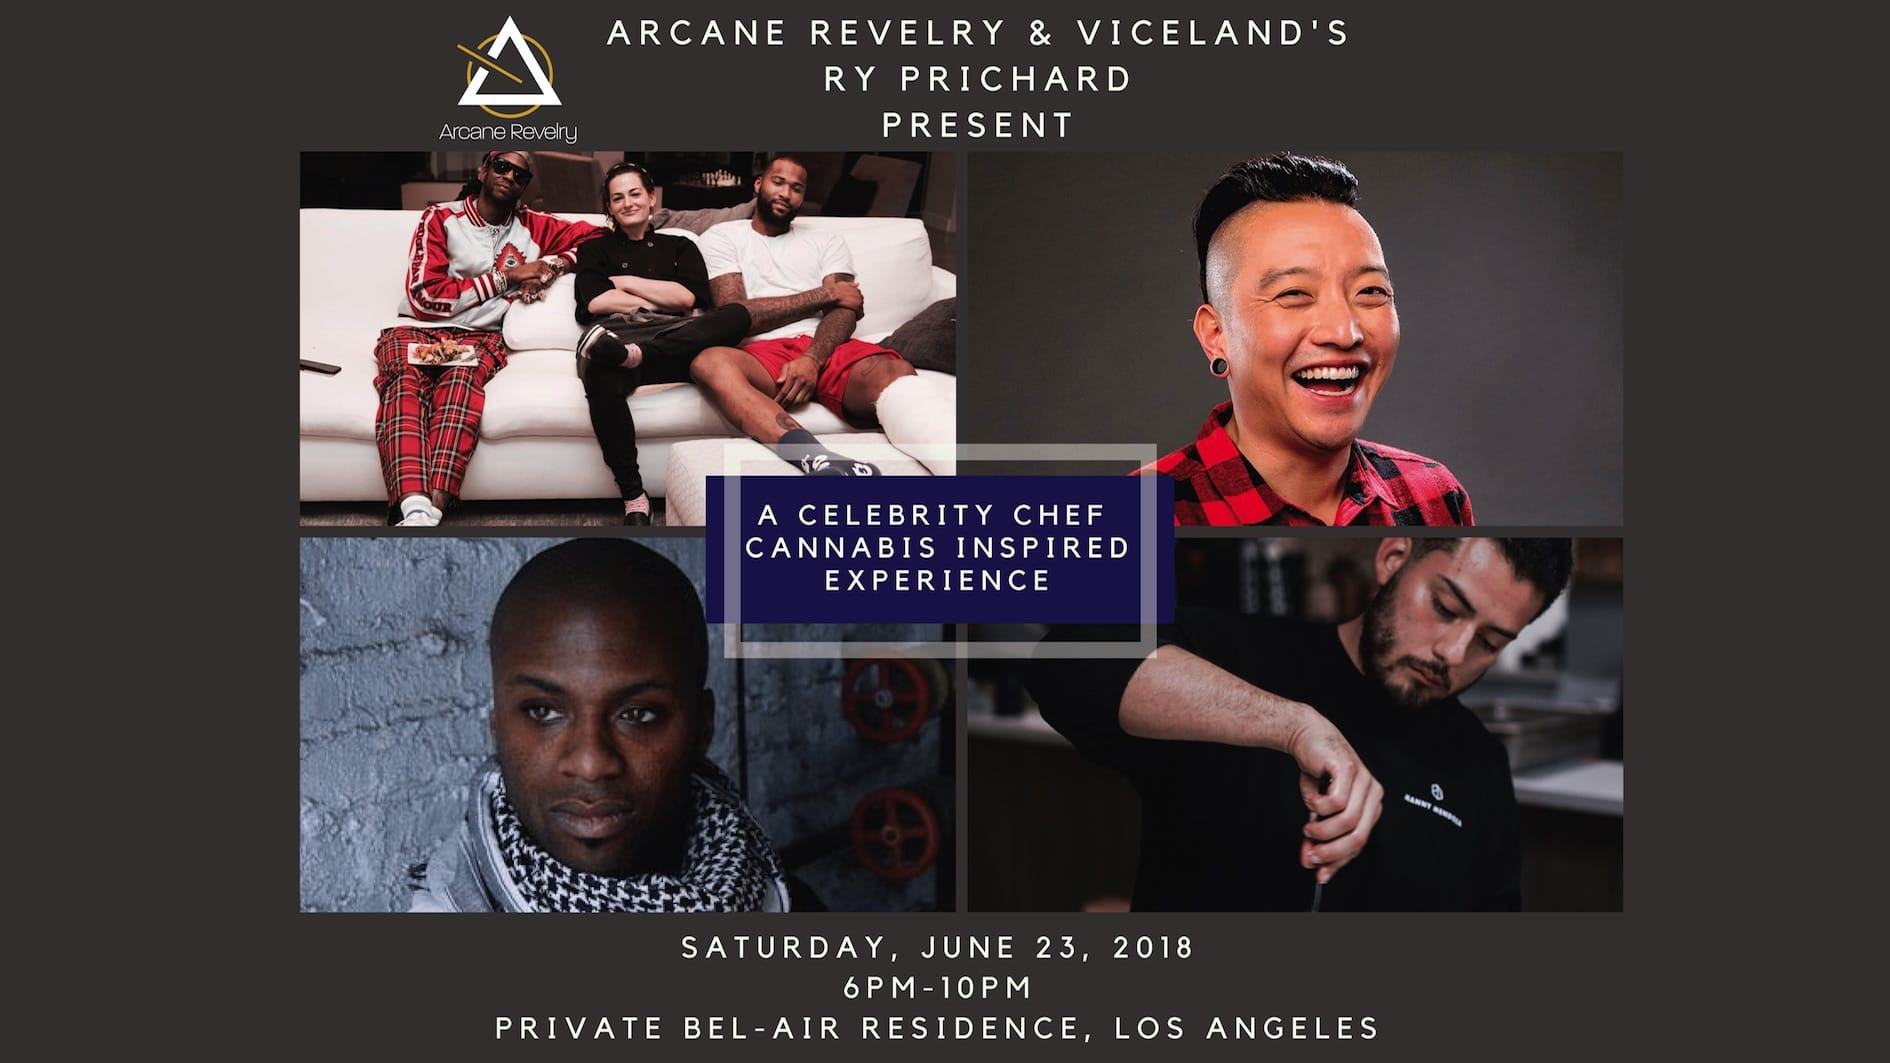 CANNABIS INSPIRED CELEBRITY CHEF EXPERIENCE (Advocate Sponsor)